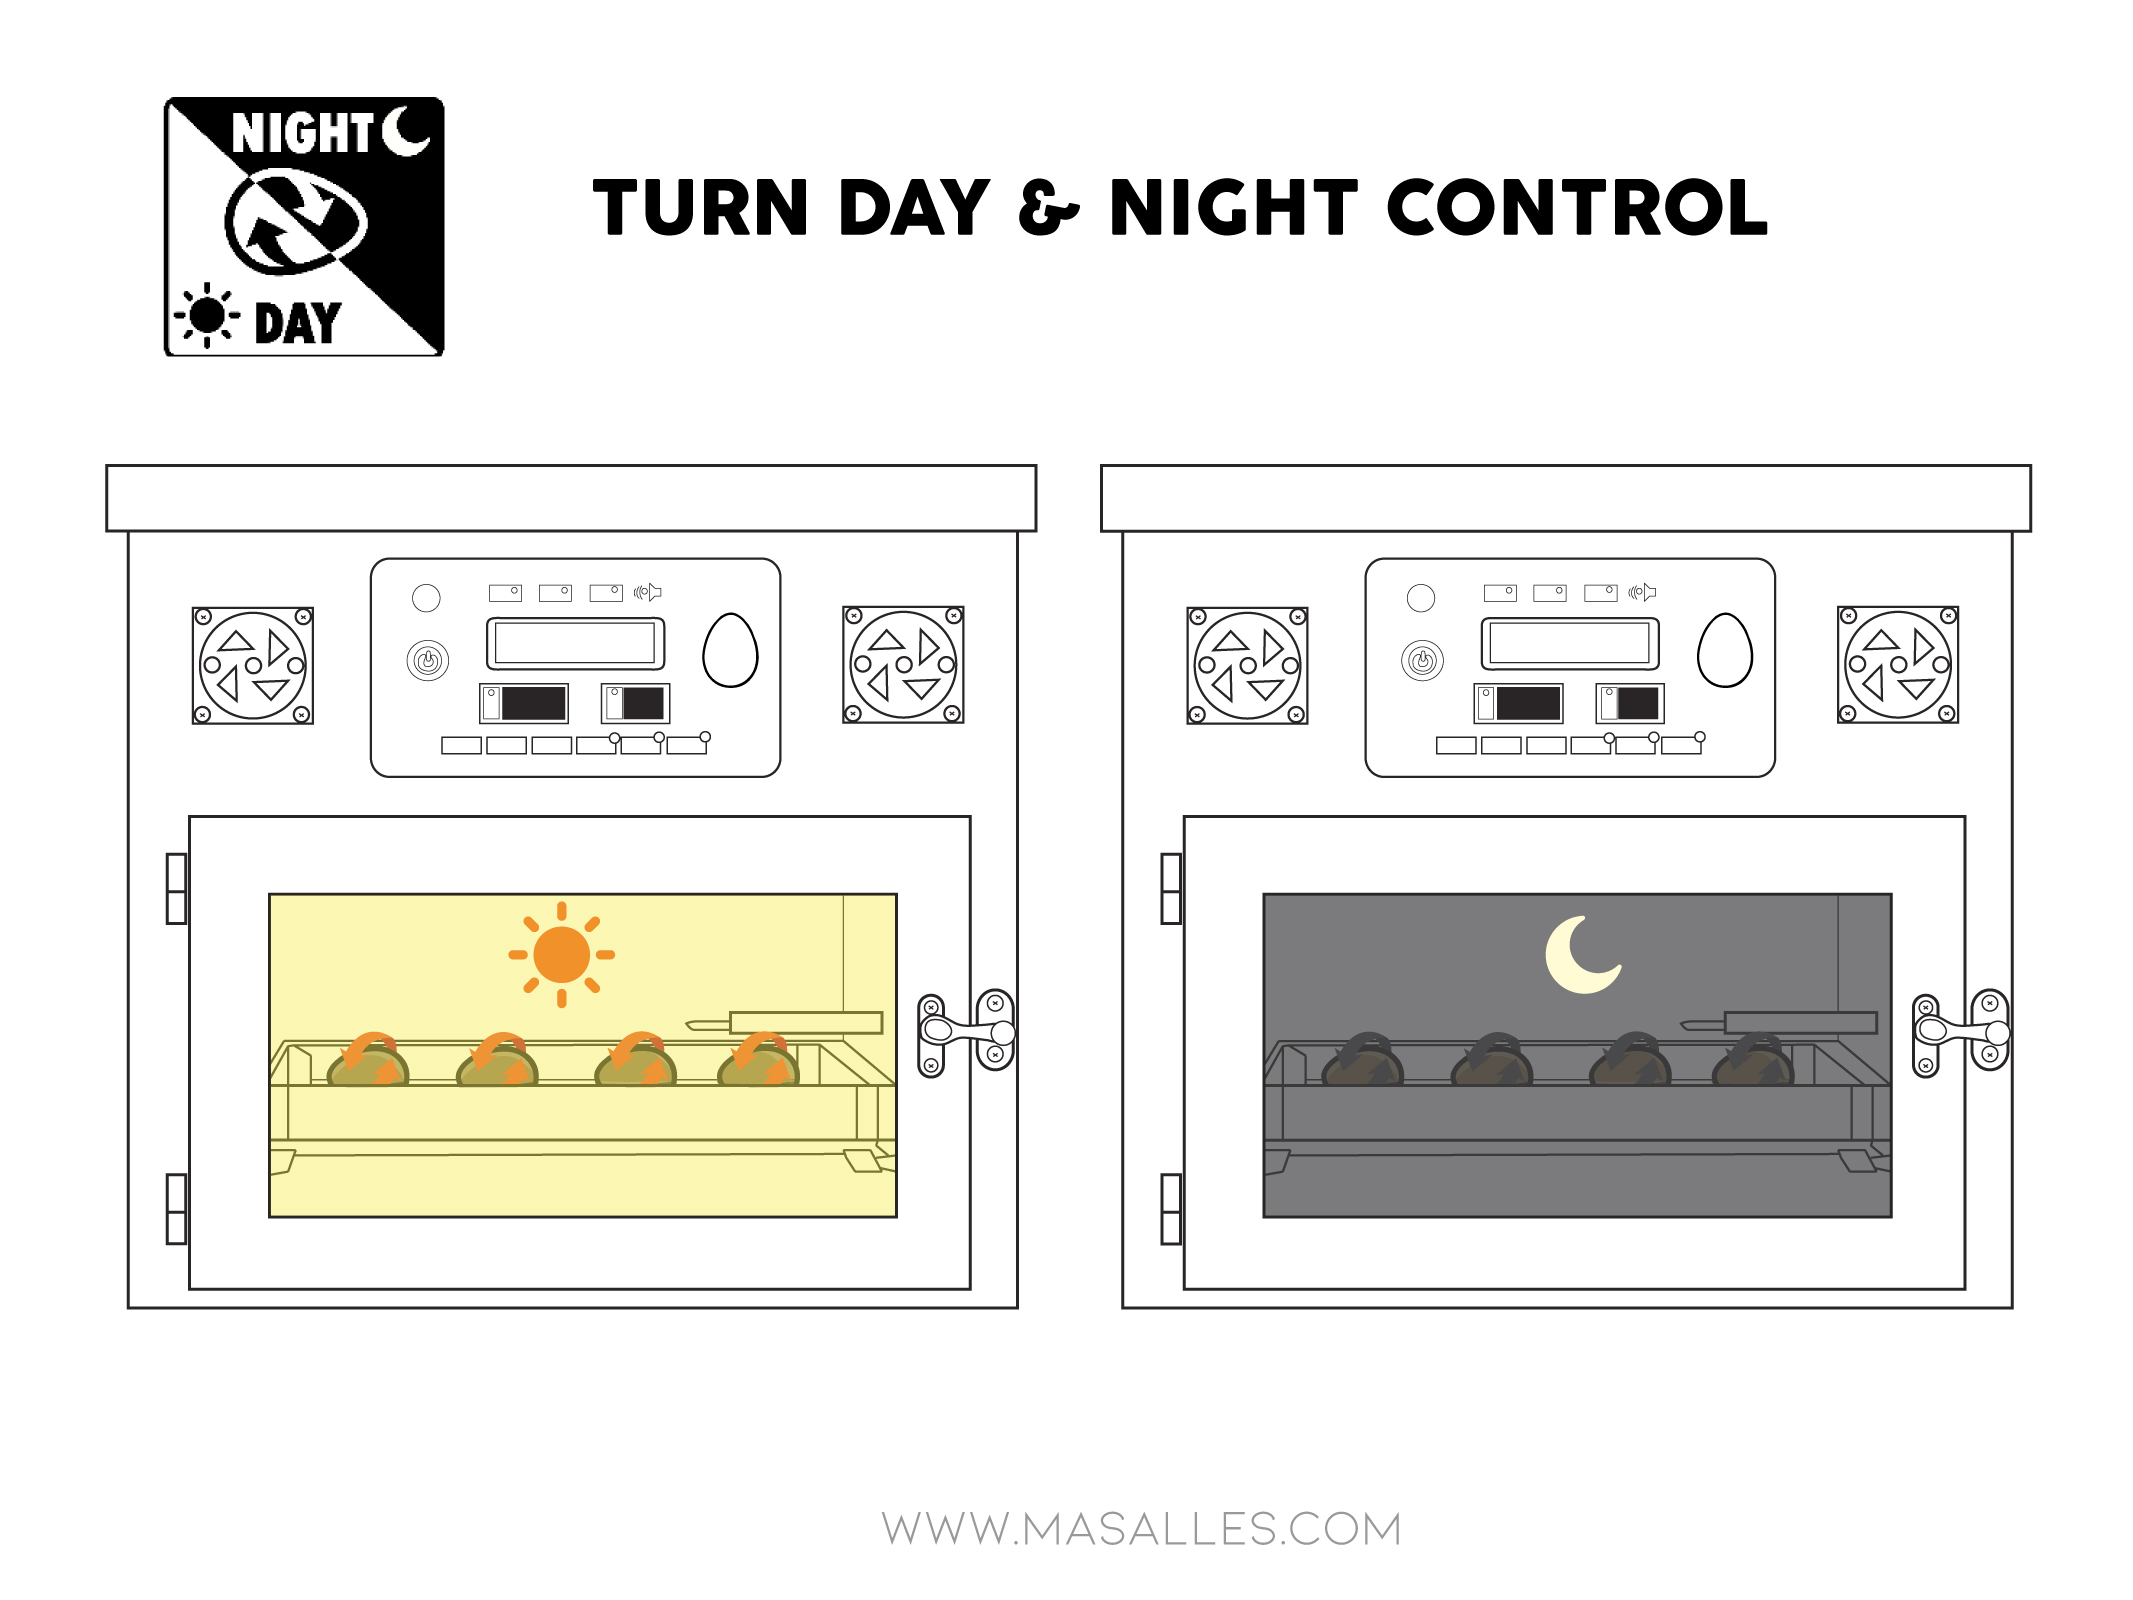 masalles falcon day and night control 01 01